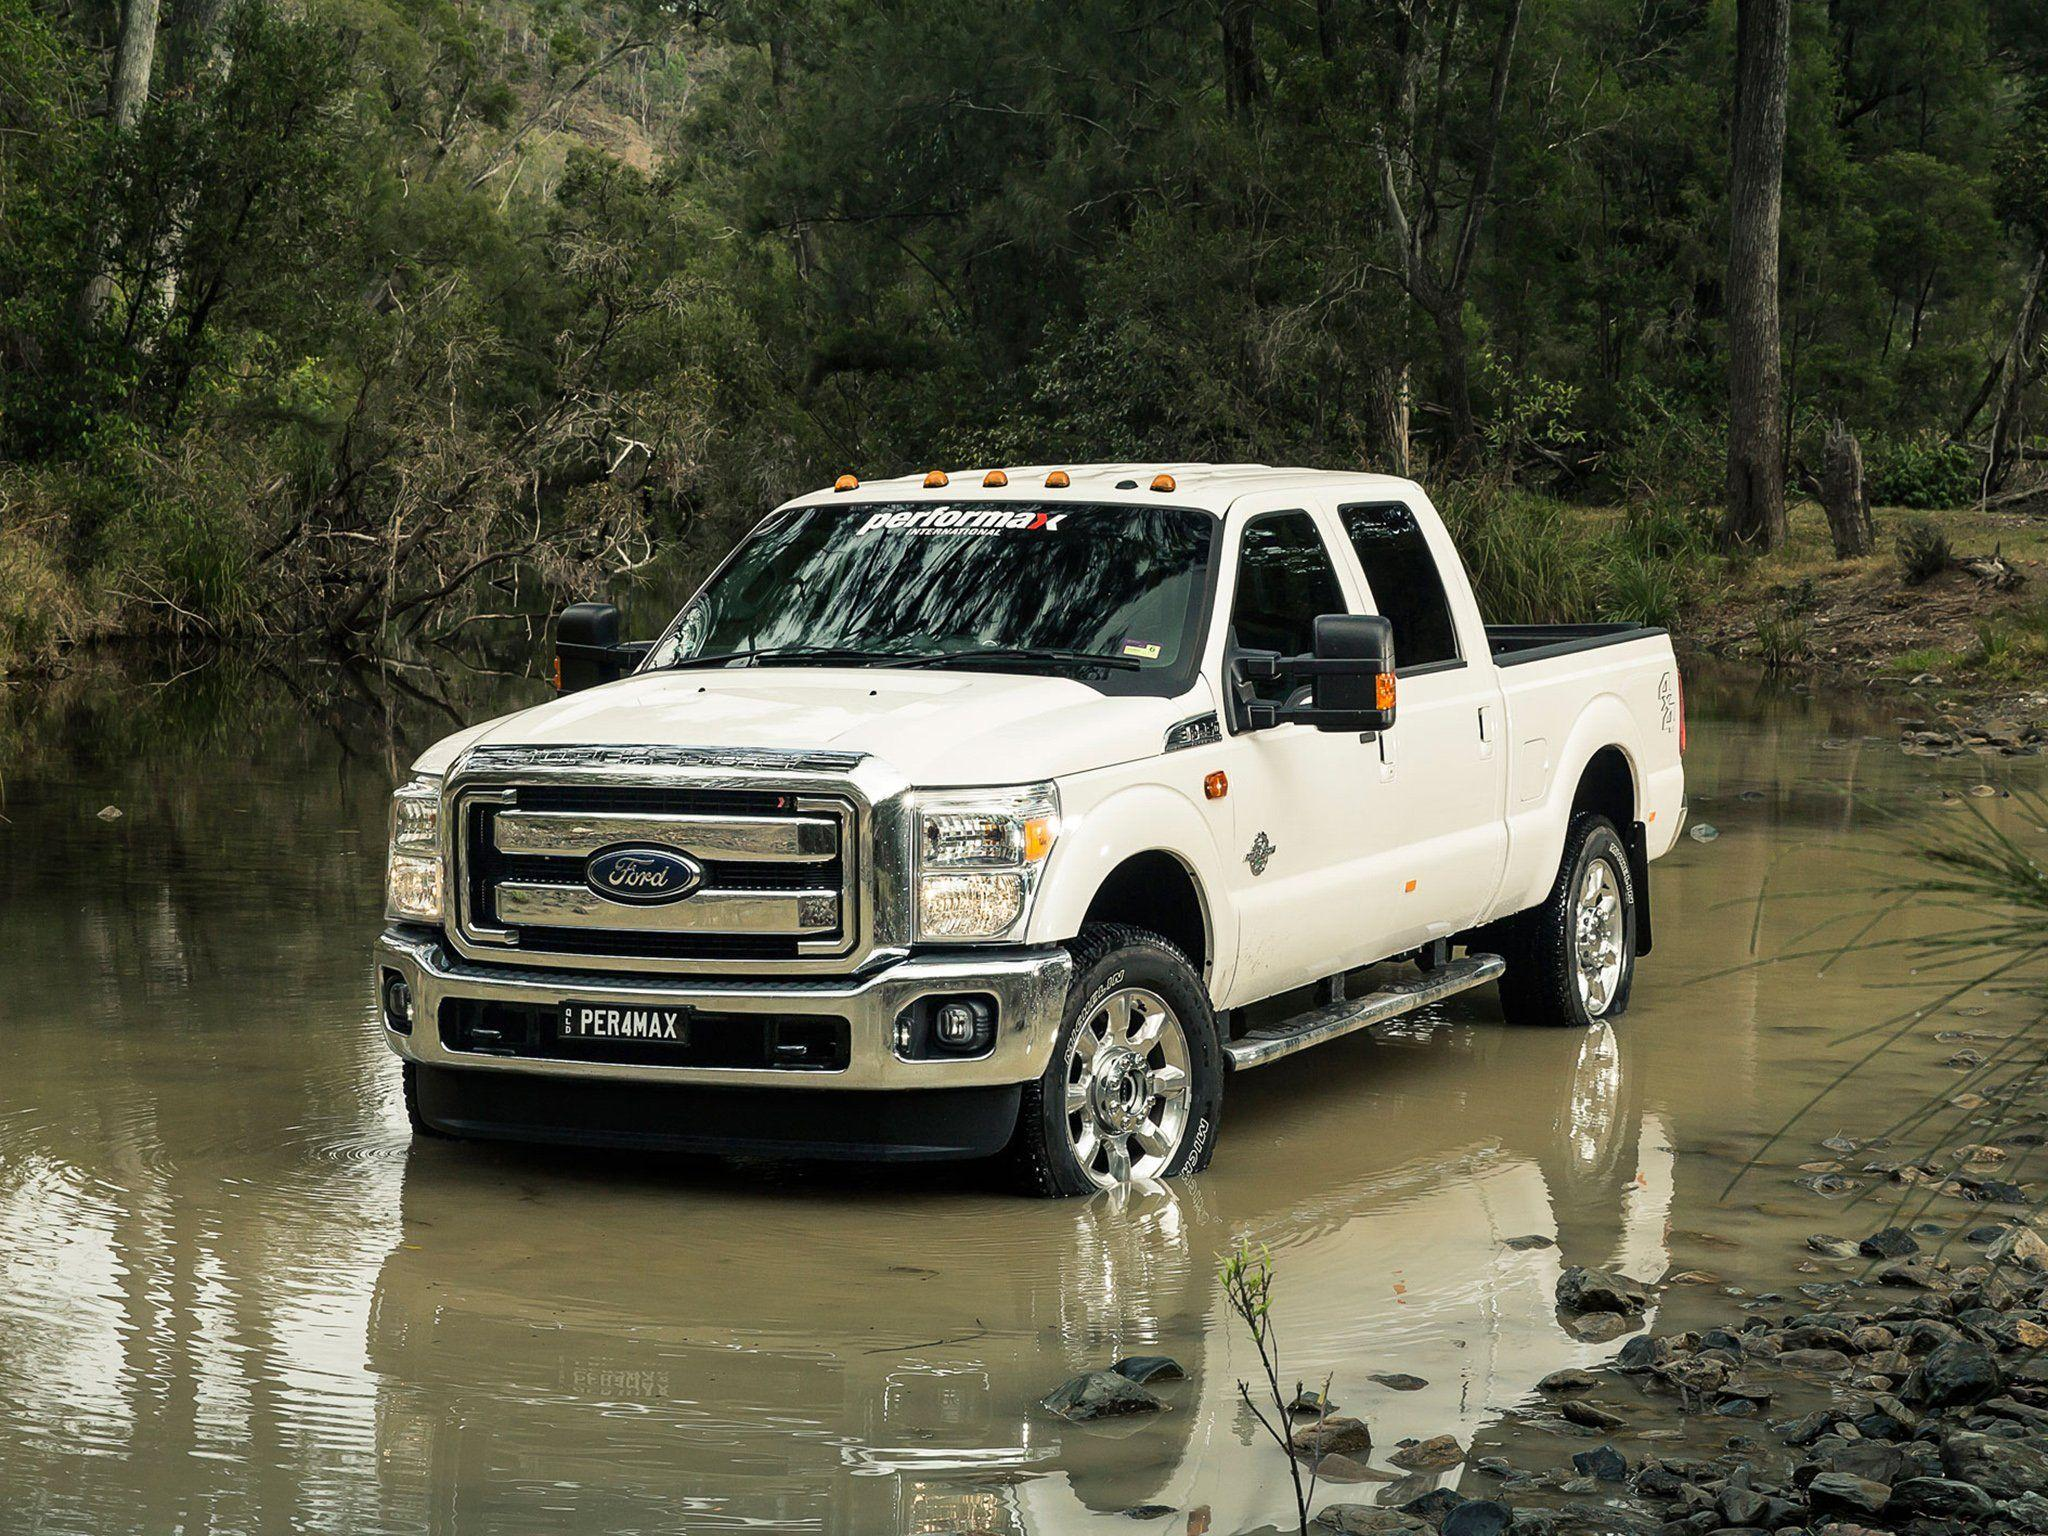 2015 Ford F-250 Super Duty AU-spec 4x4 pickup f250 wallpaper ...